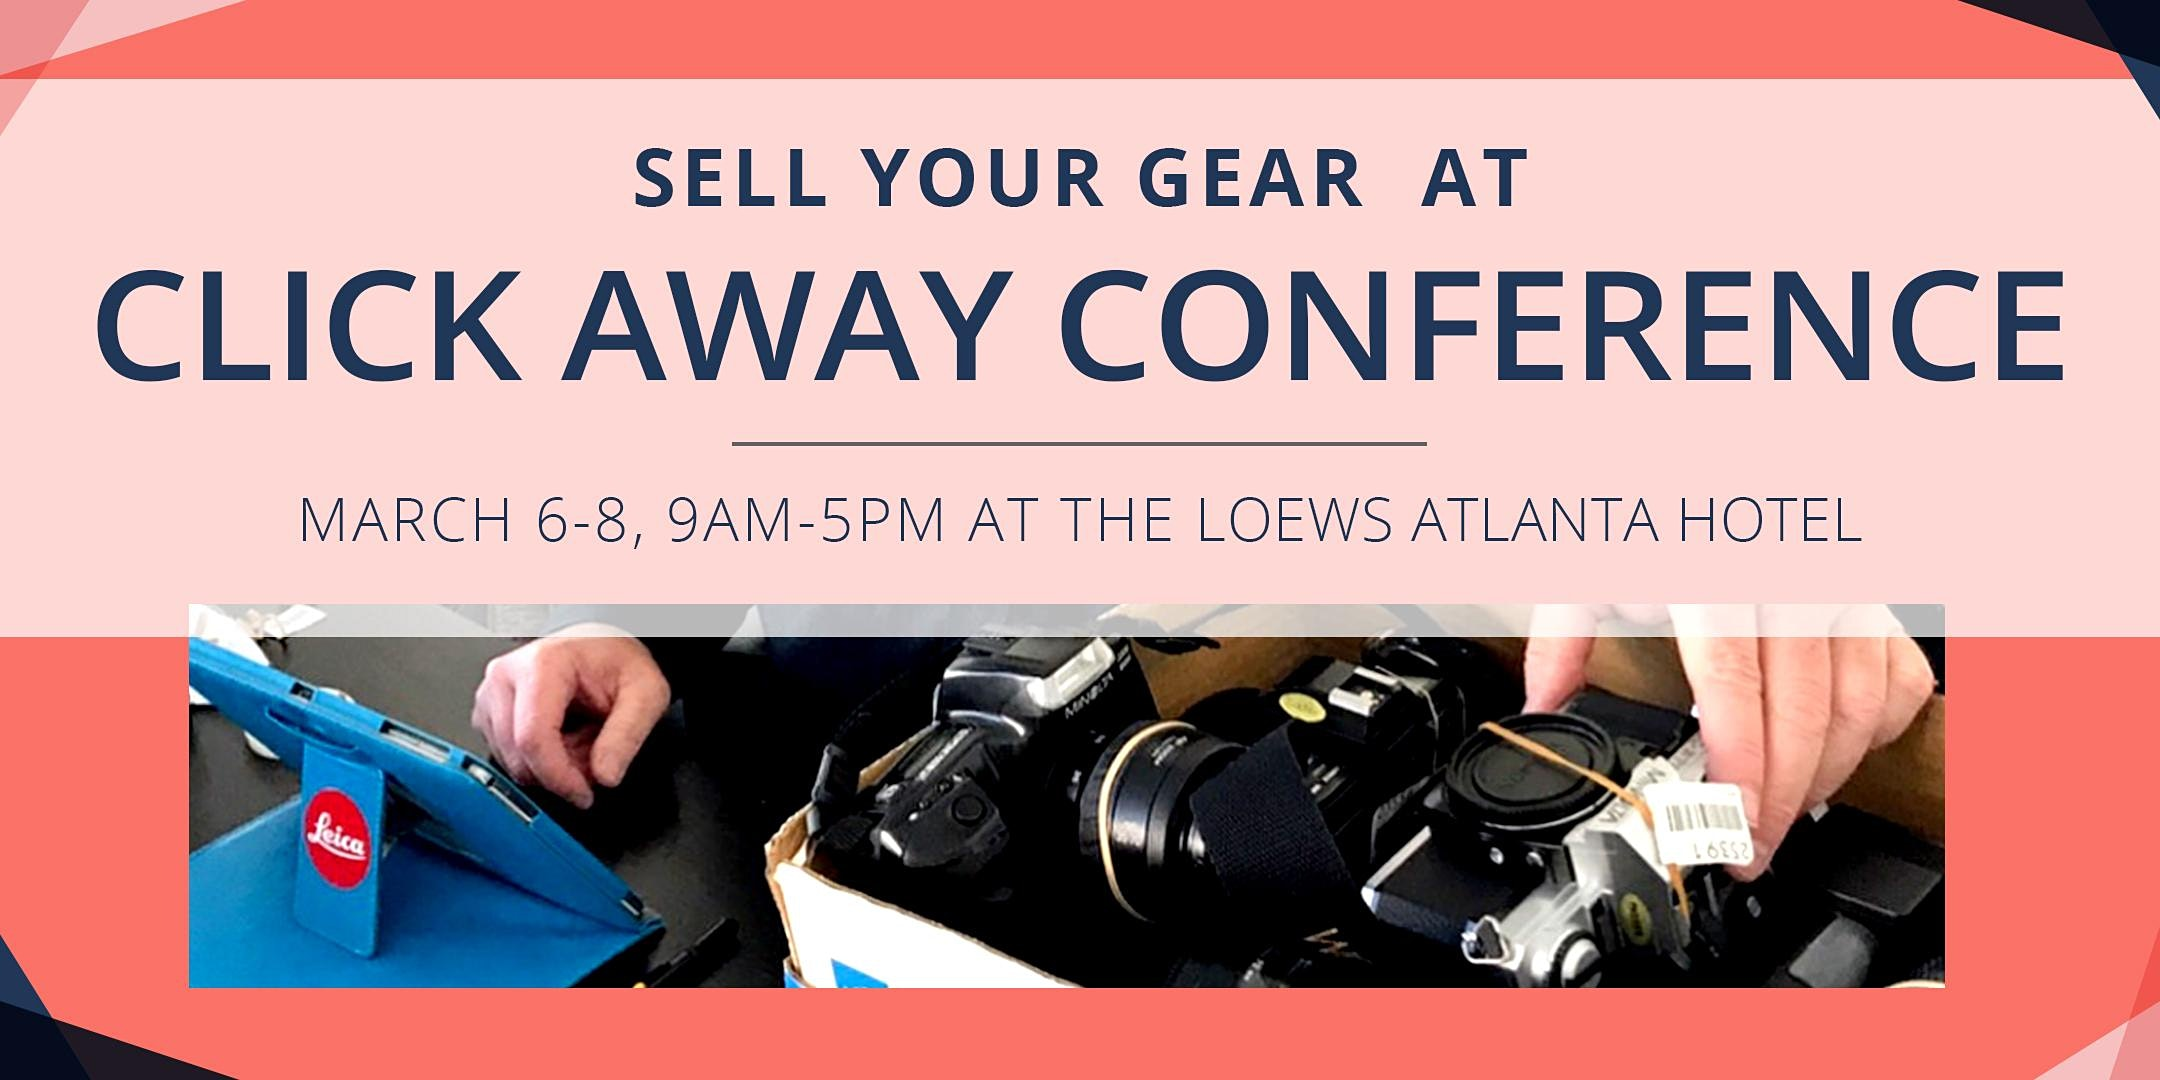 Sell Your Camera Gear at The Click Away Conference